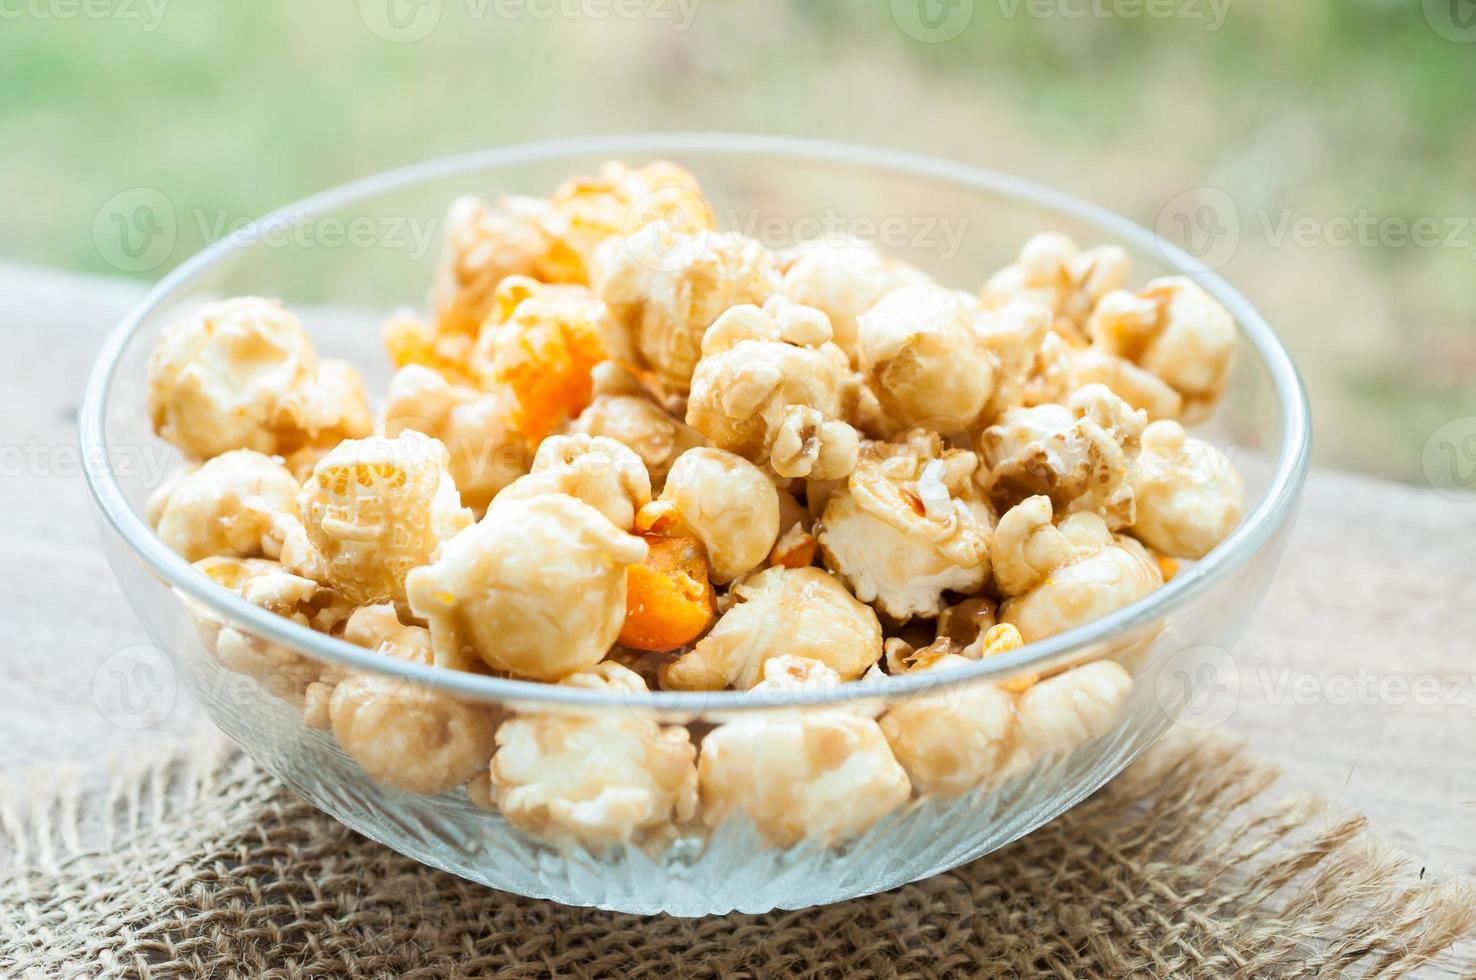 bowl of popcorn on a wooden table, caramel popcorn photo